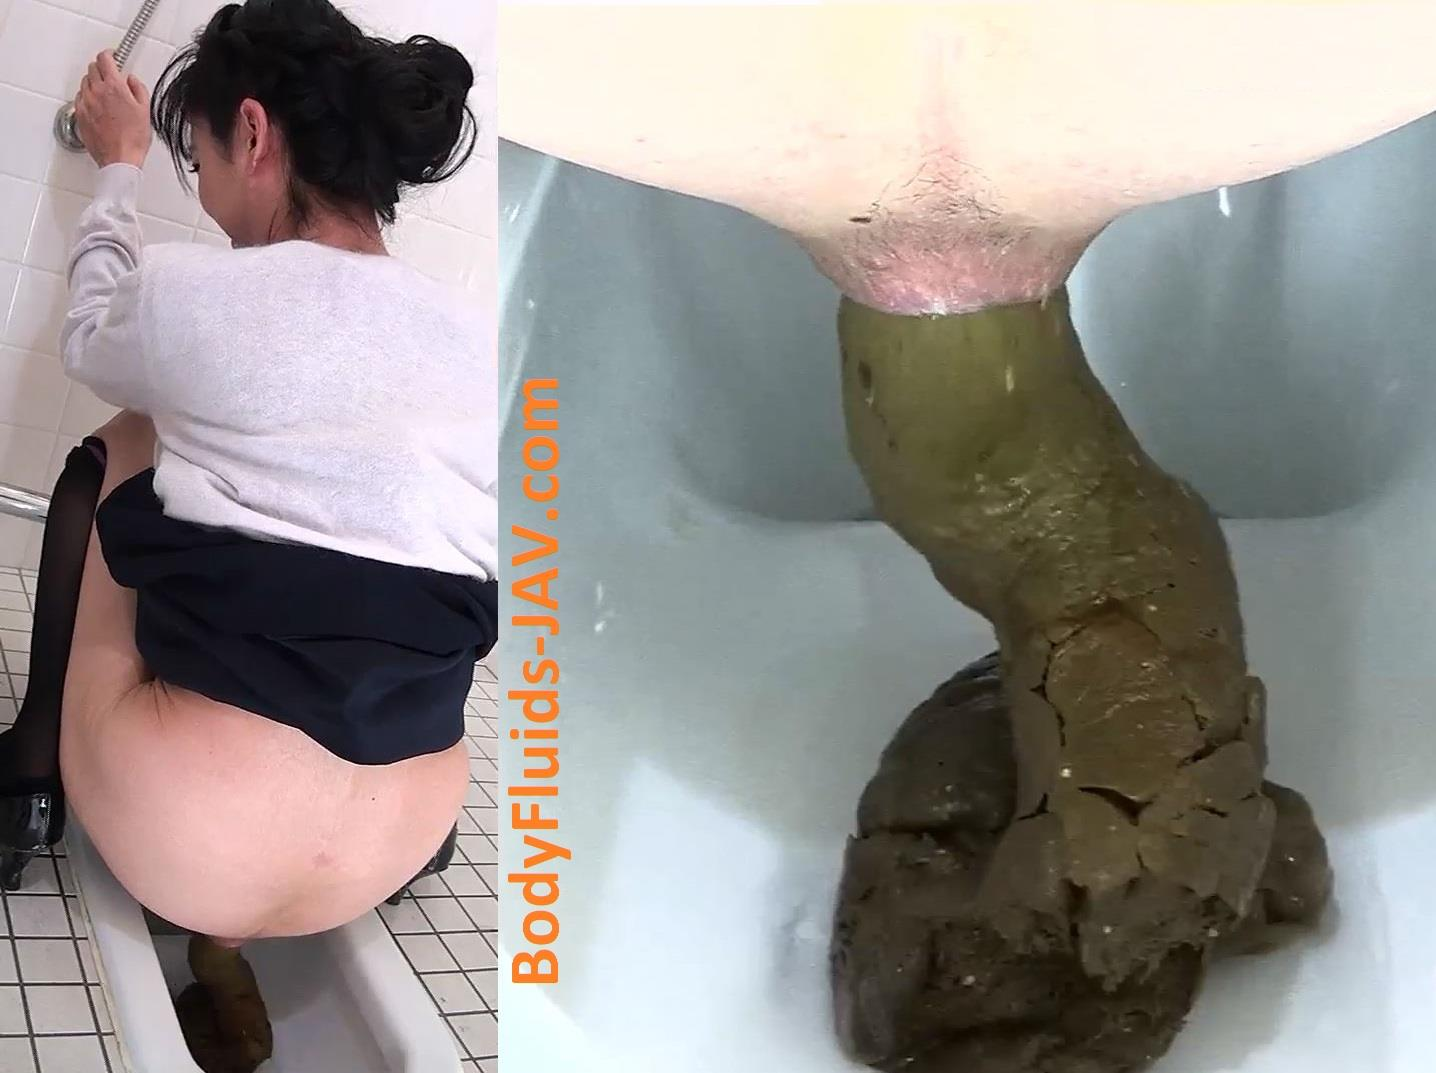 BFFF-41 Pooping girls in toilet voyeur. (HD 1080p)